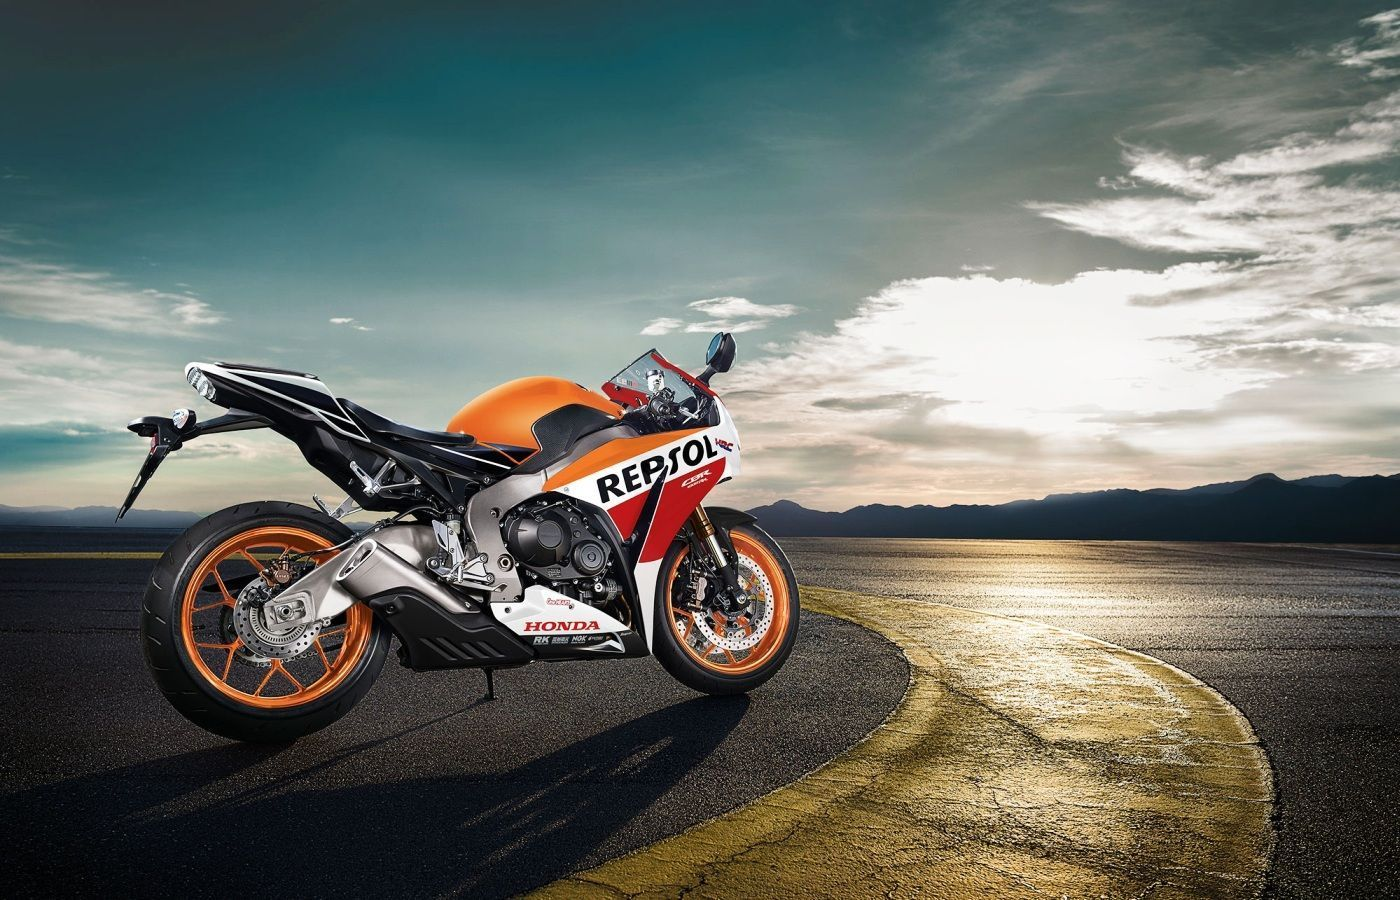 CBR1000RR Repsol 2015 HD Wallpapers  Motorcycles 1400x900